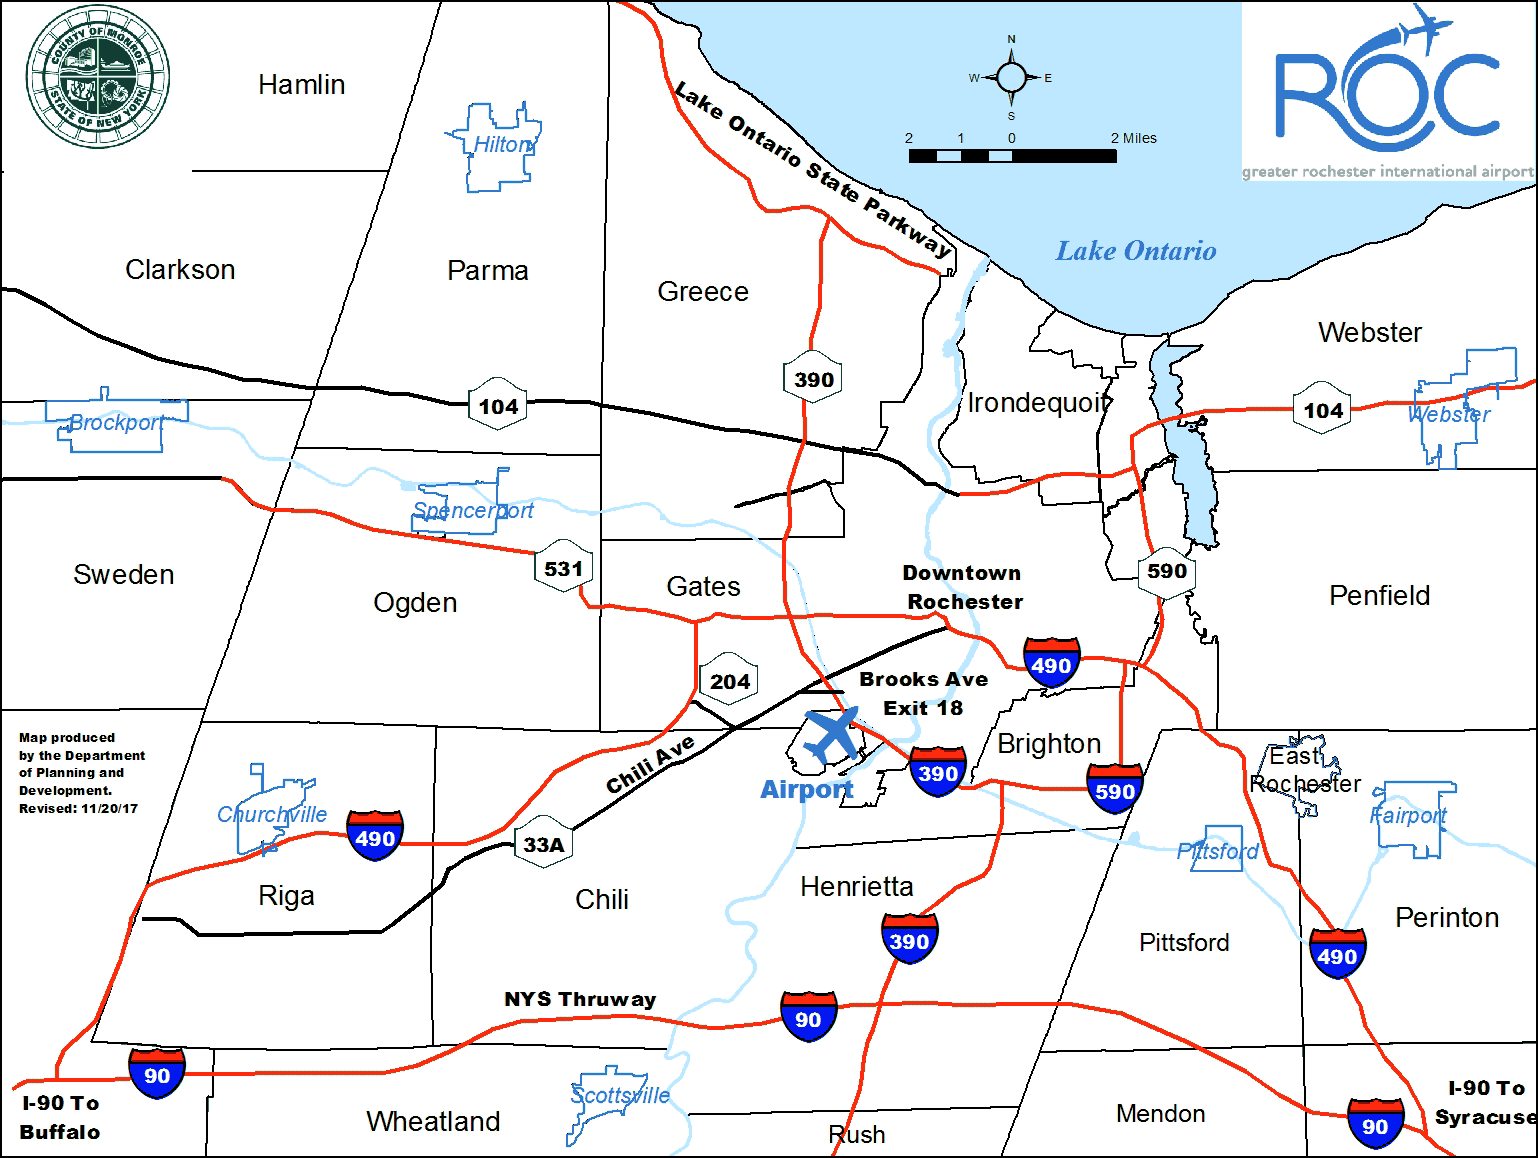 Map to ROC